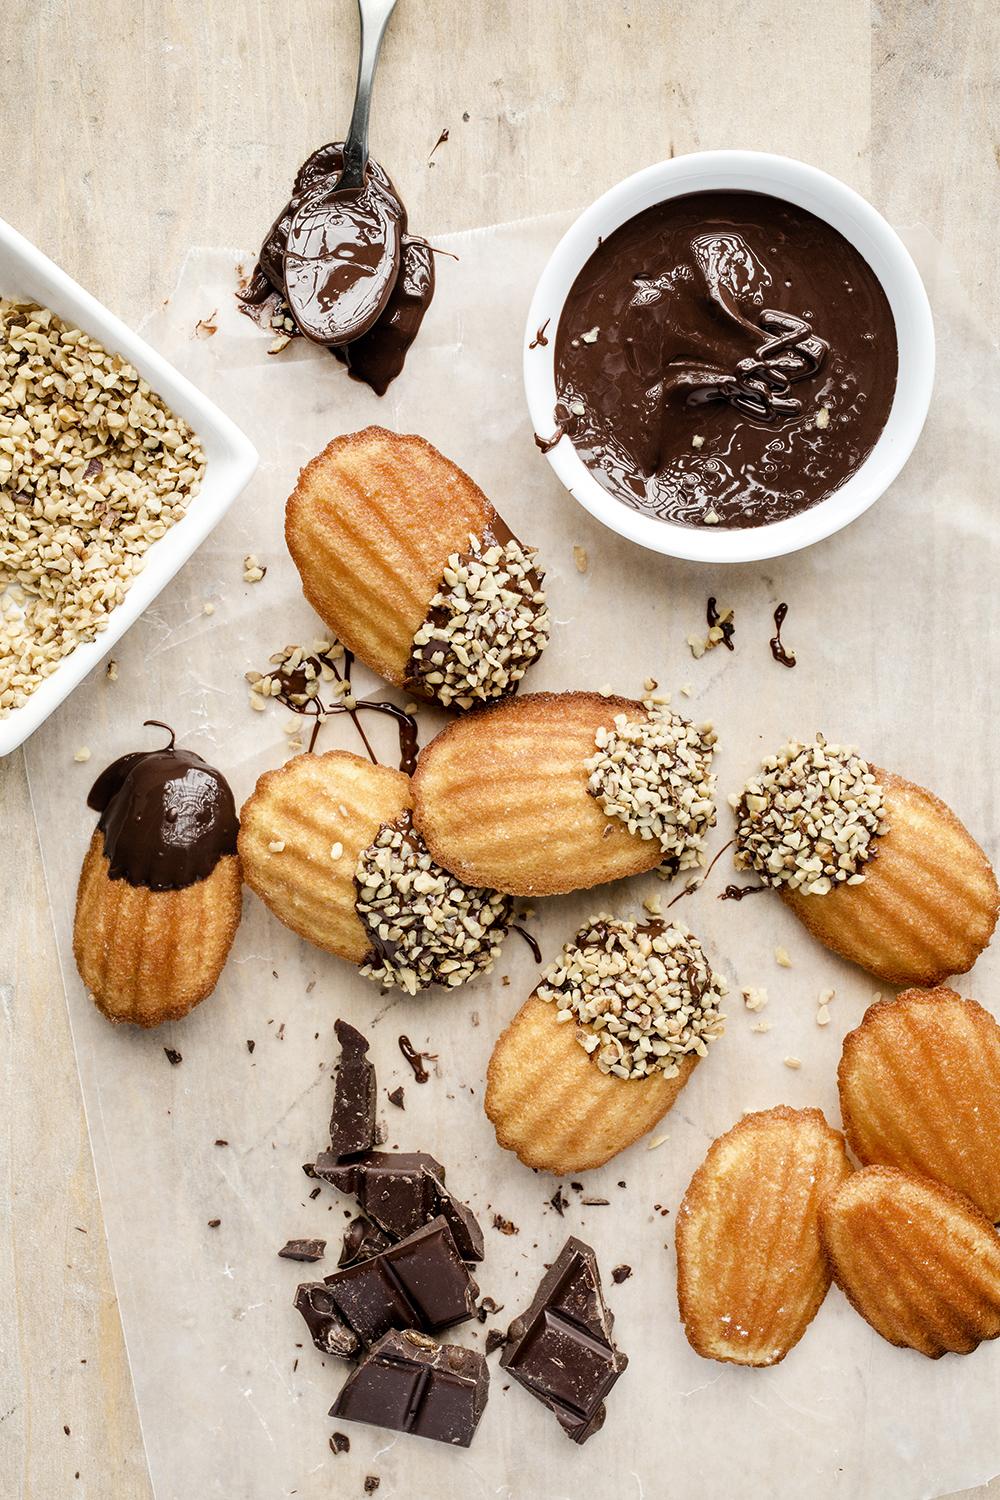 Madeleines coated in dark chocolate and crushed walnuts.